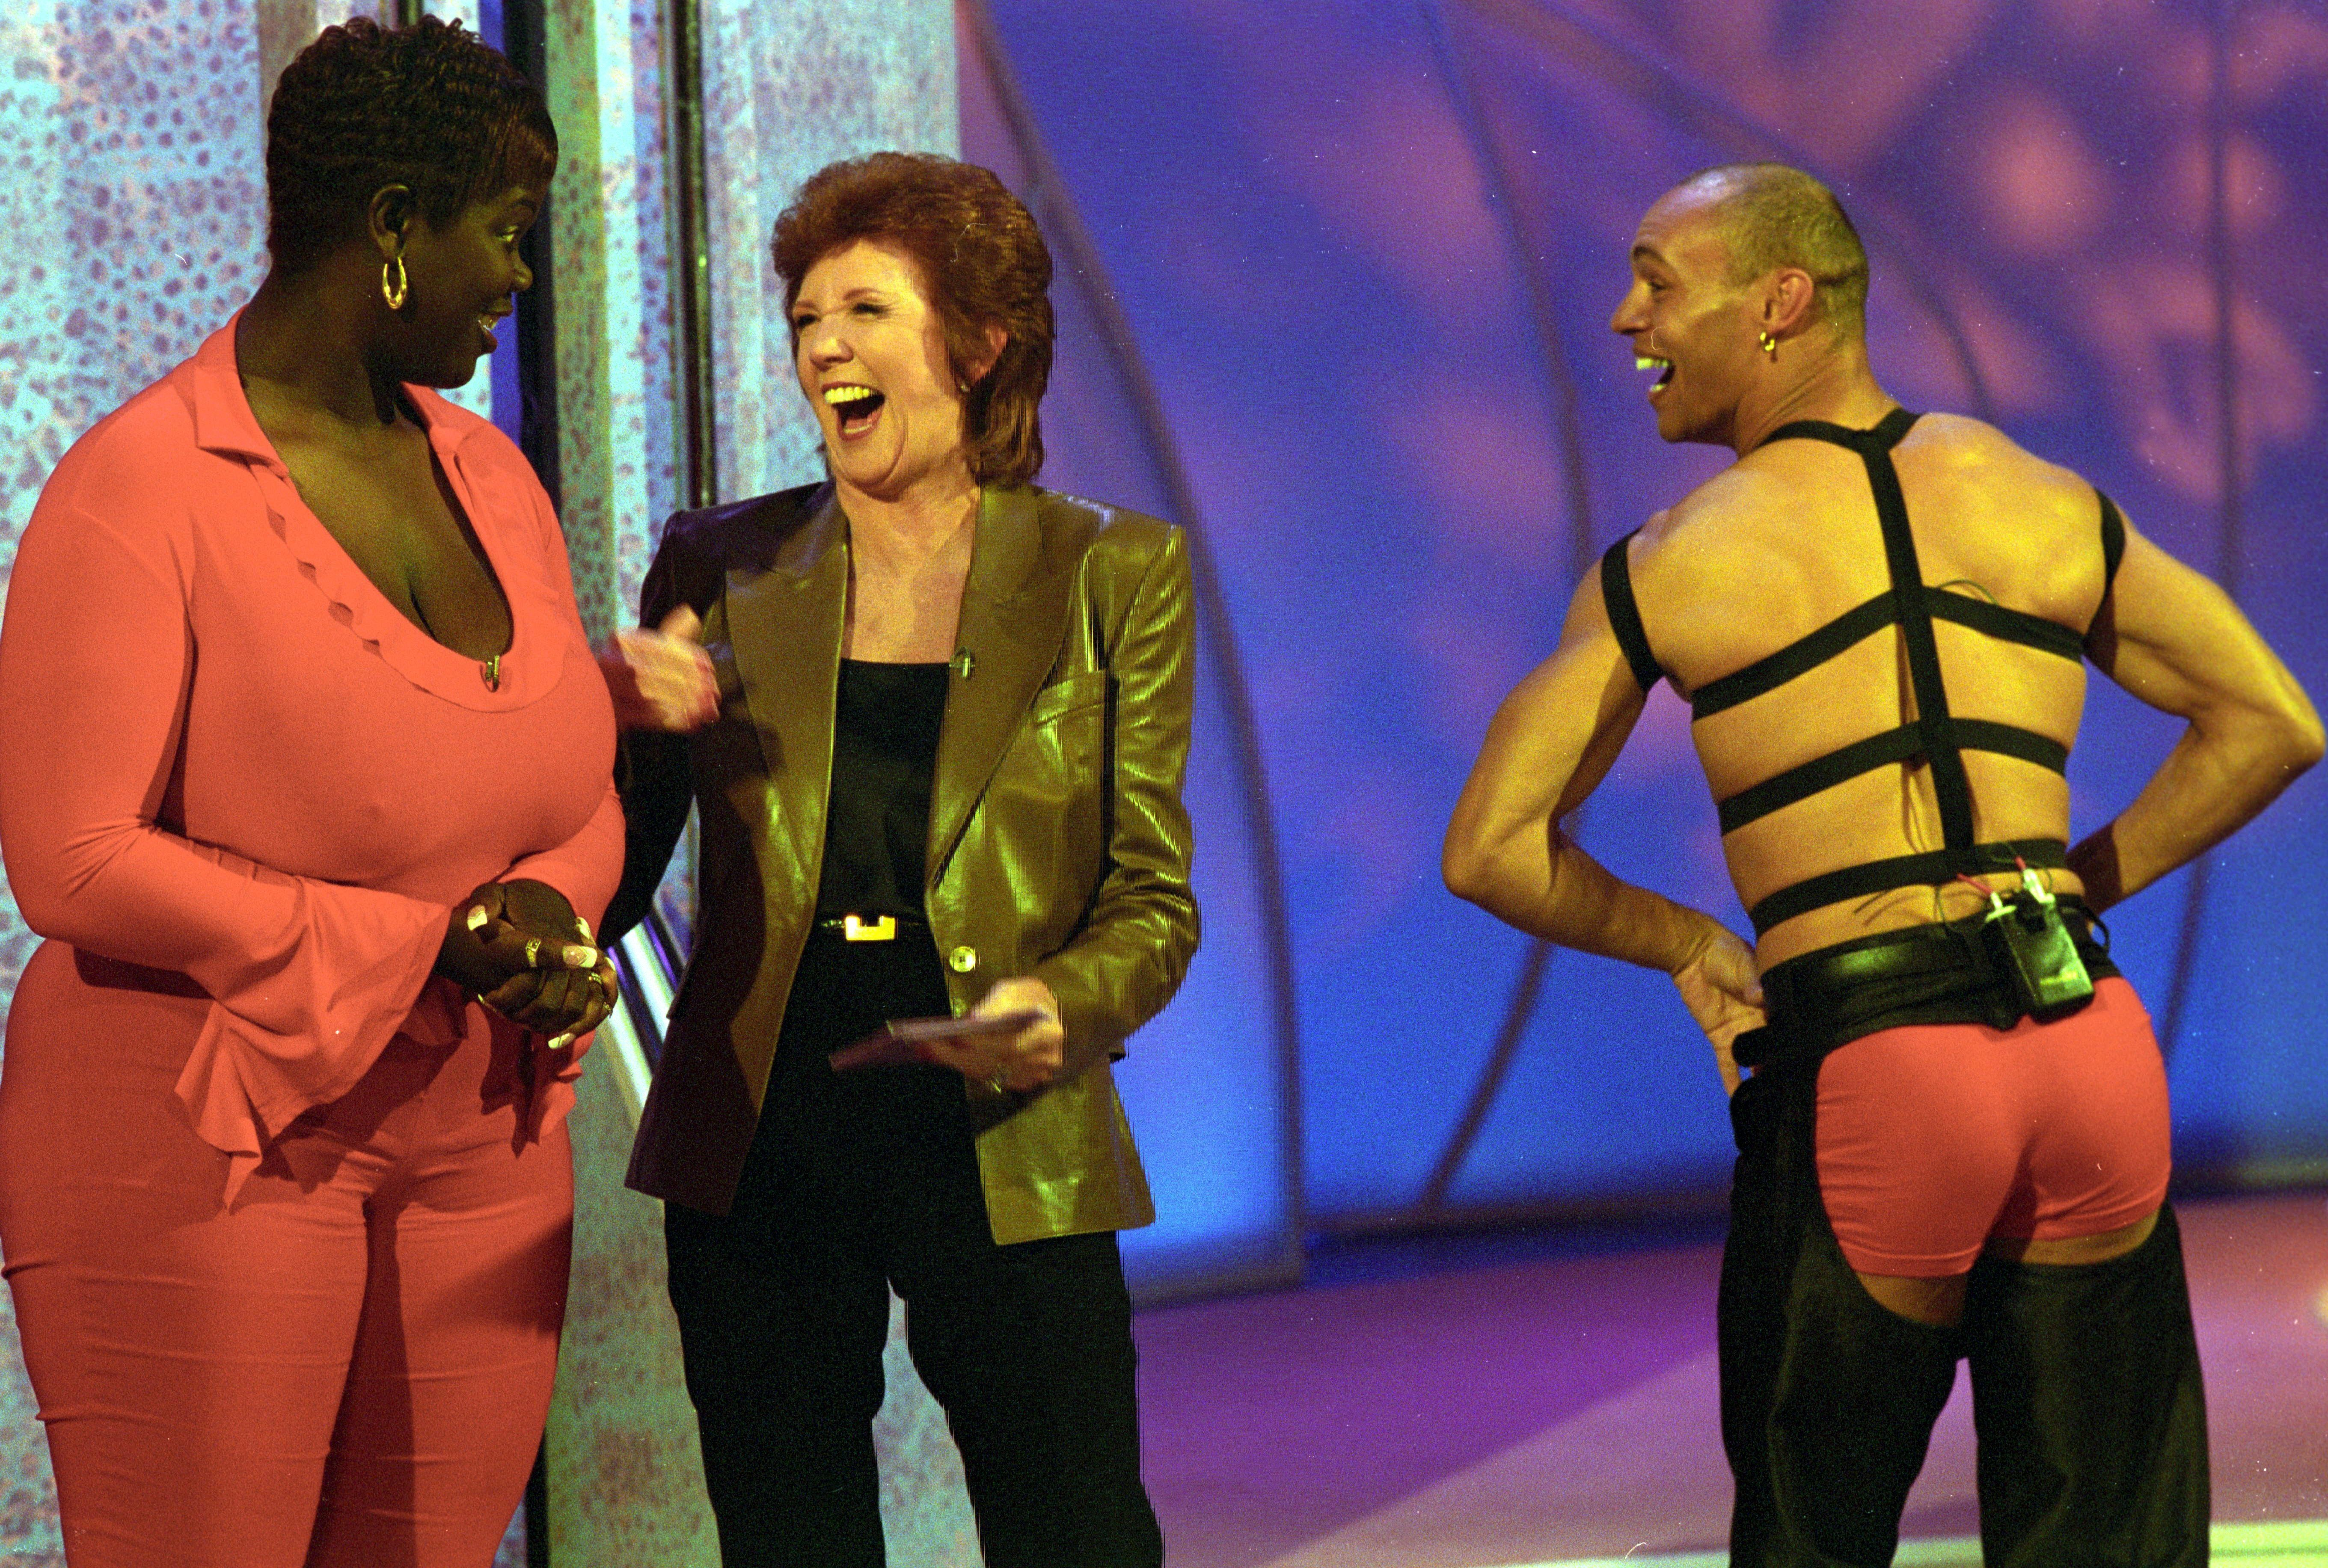 Cilla hosted 'Blind Date' from 1985 to